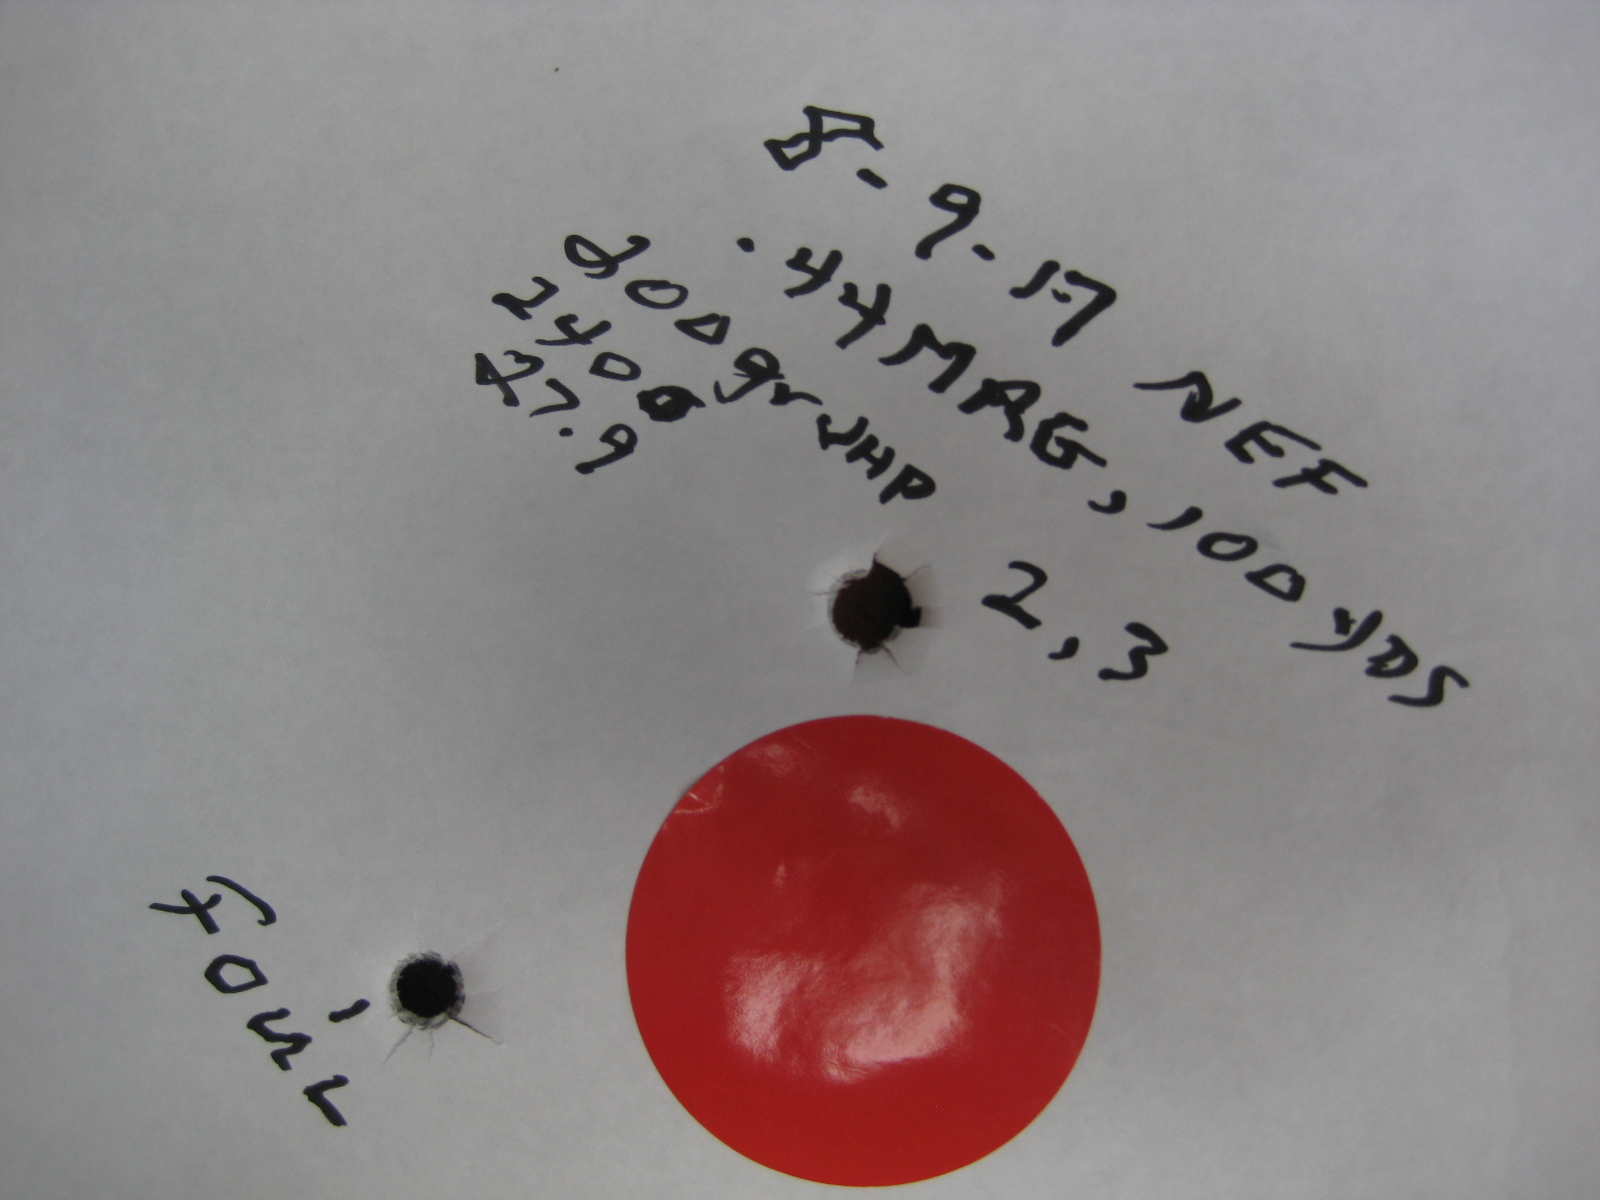 Checking NEF single shot  44mag  - Field and Stream Questions and